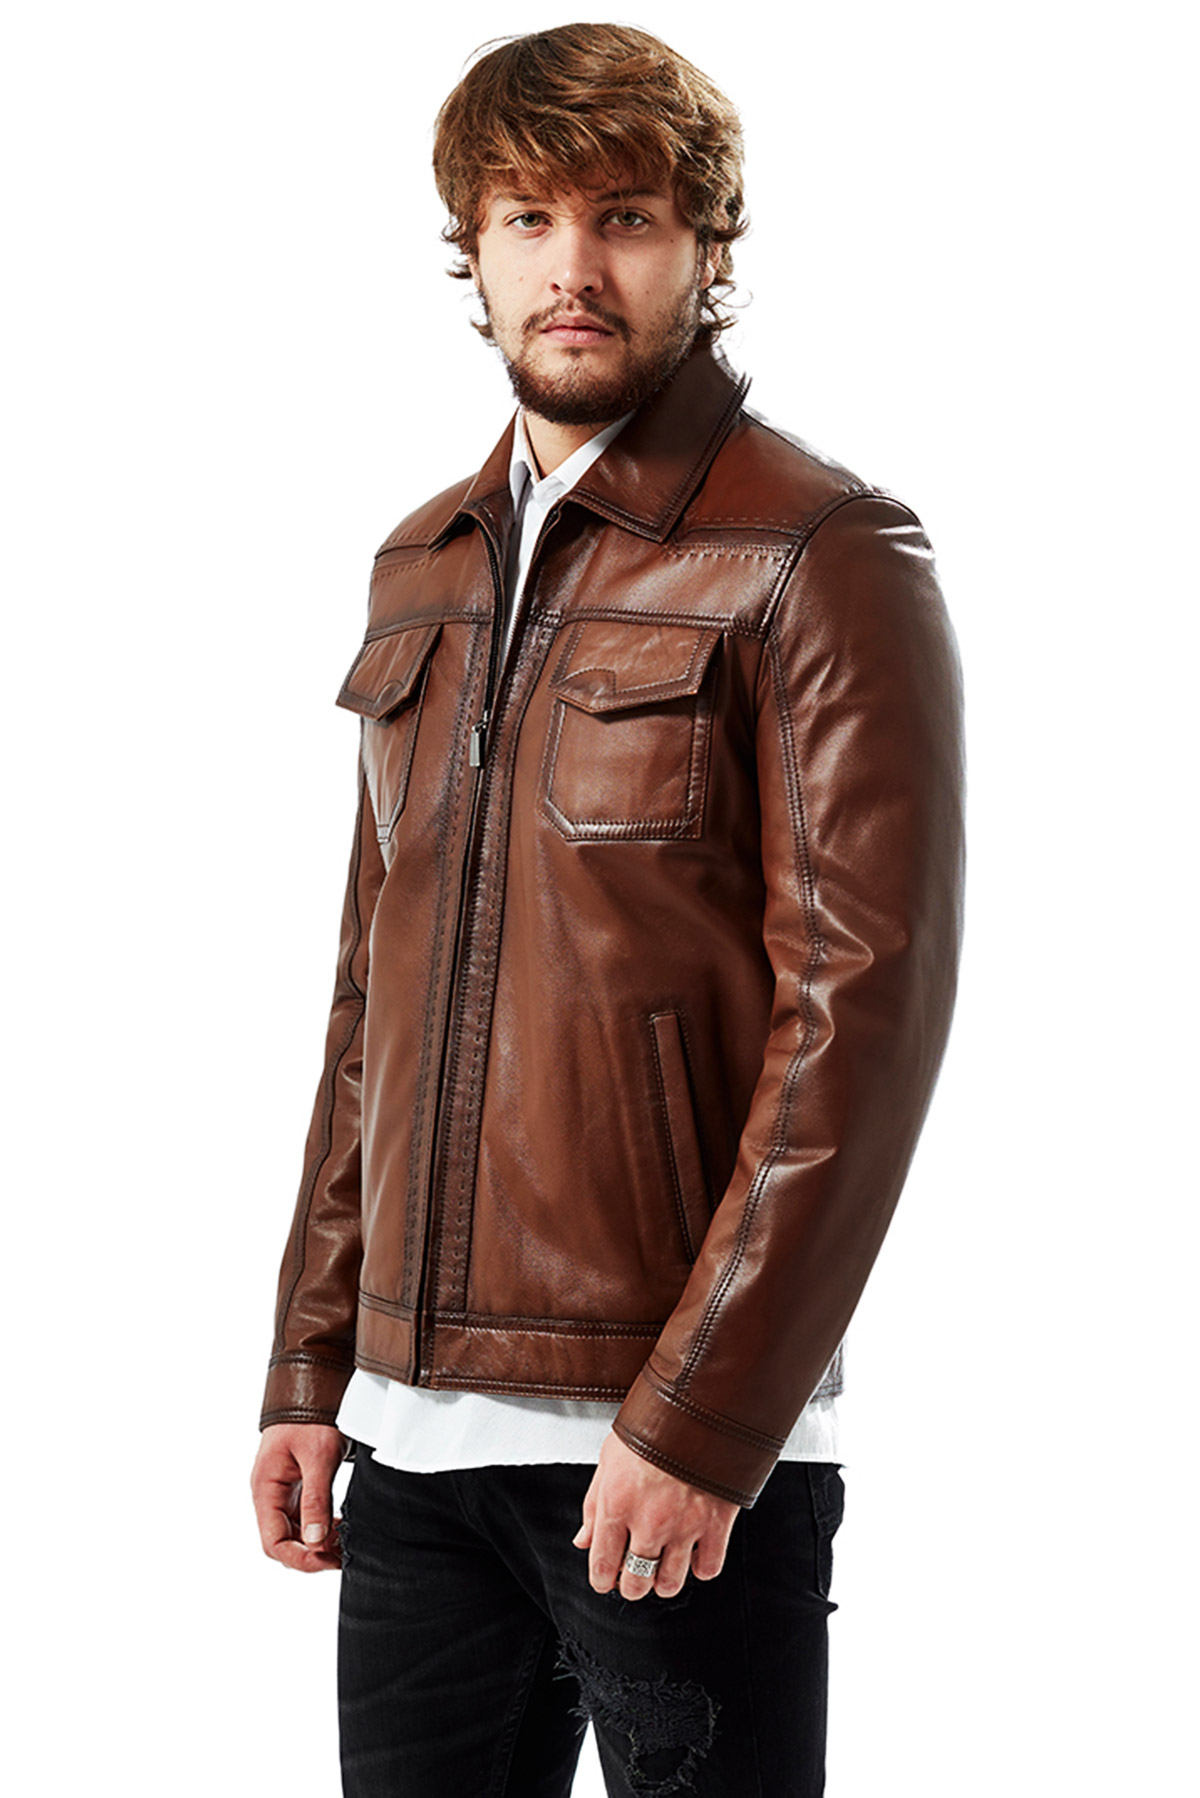 the best men's leather jackets